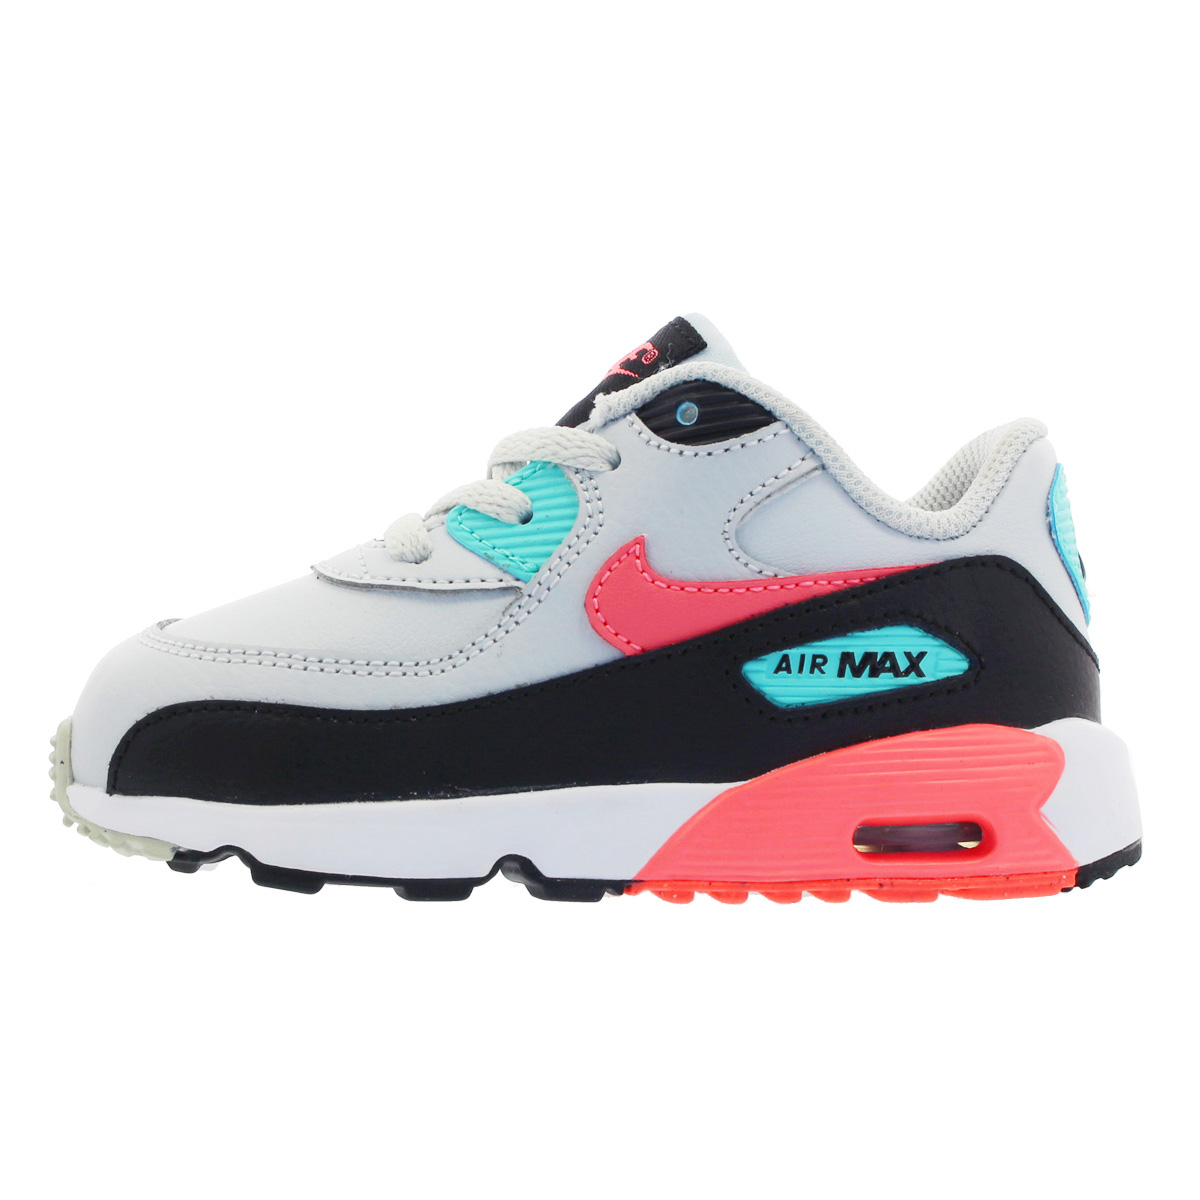 NIKE AIR MAX 90 LTR TD Kie Ney AMAX 90 leather TD PURE PLATINUMLAVA GLOWBLACKAURORA GREEN 833,379 013